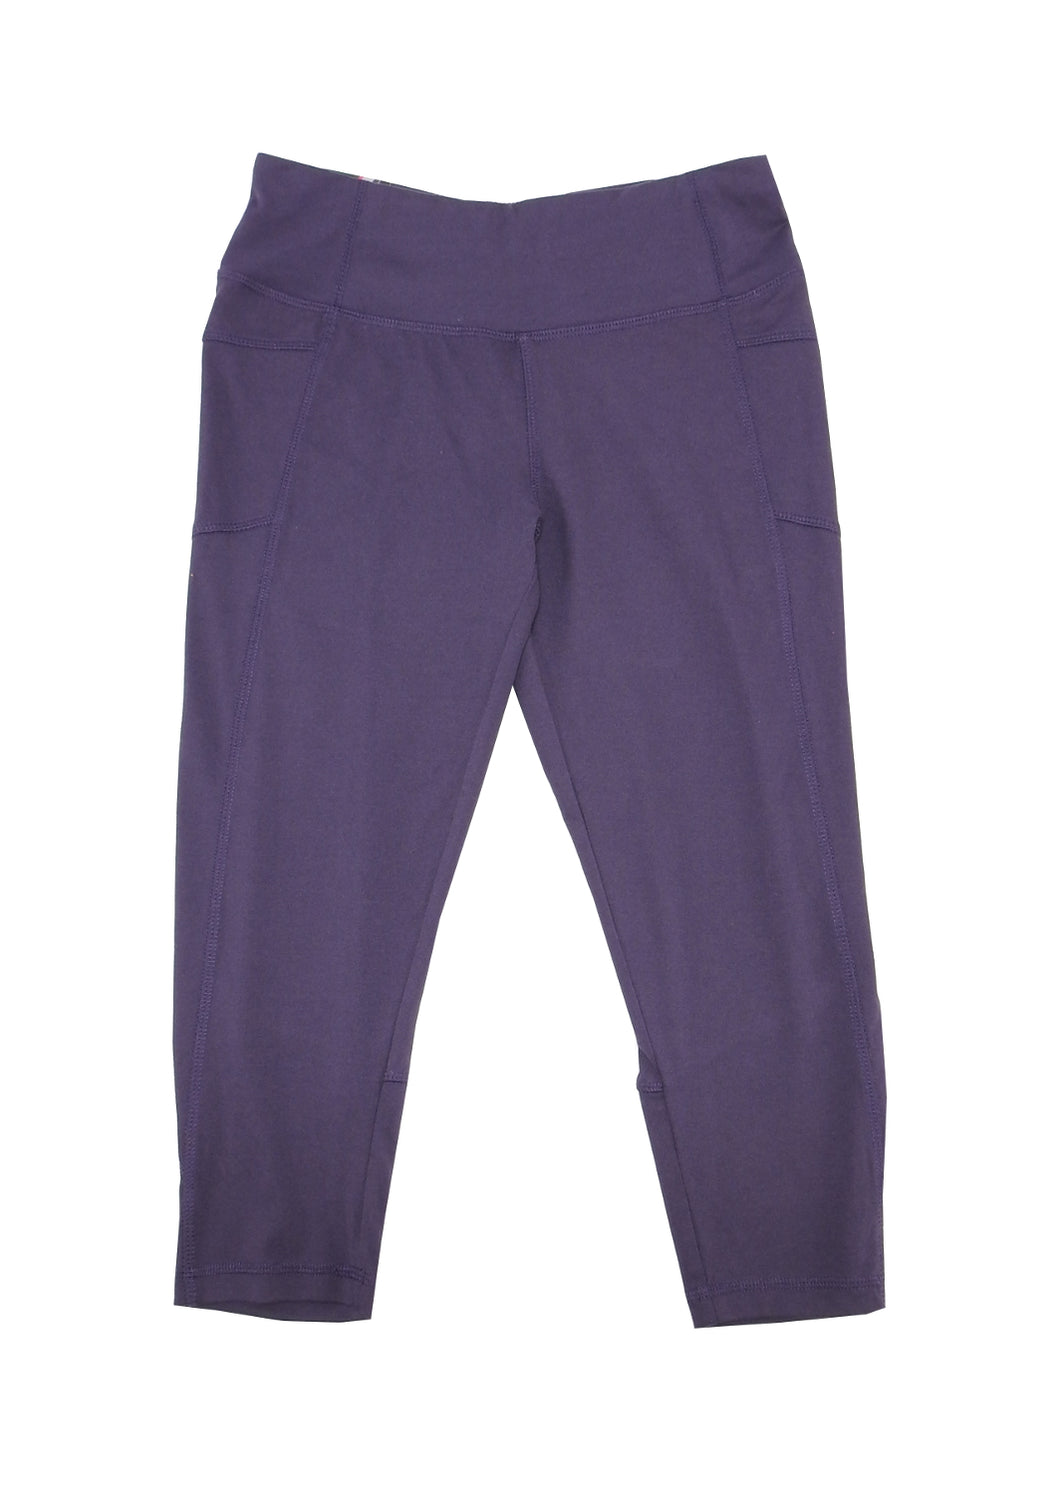 Marika Tek Women's Size Small (4-6) Performance Fitted Capri, Purple